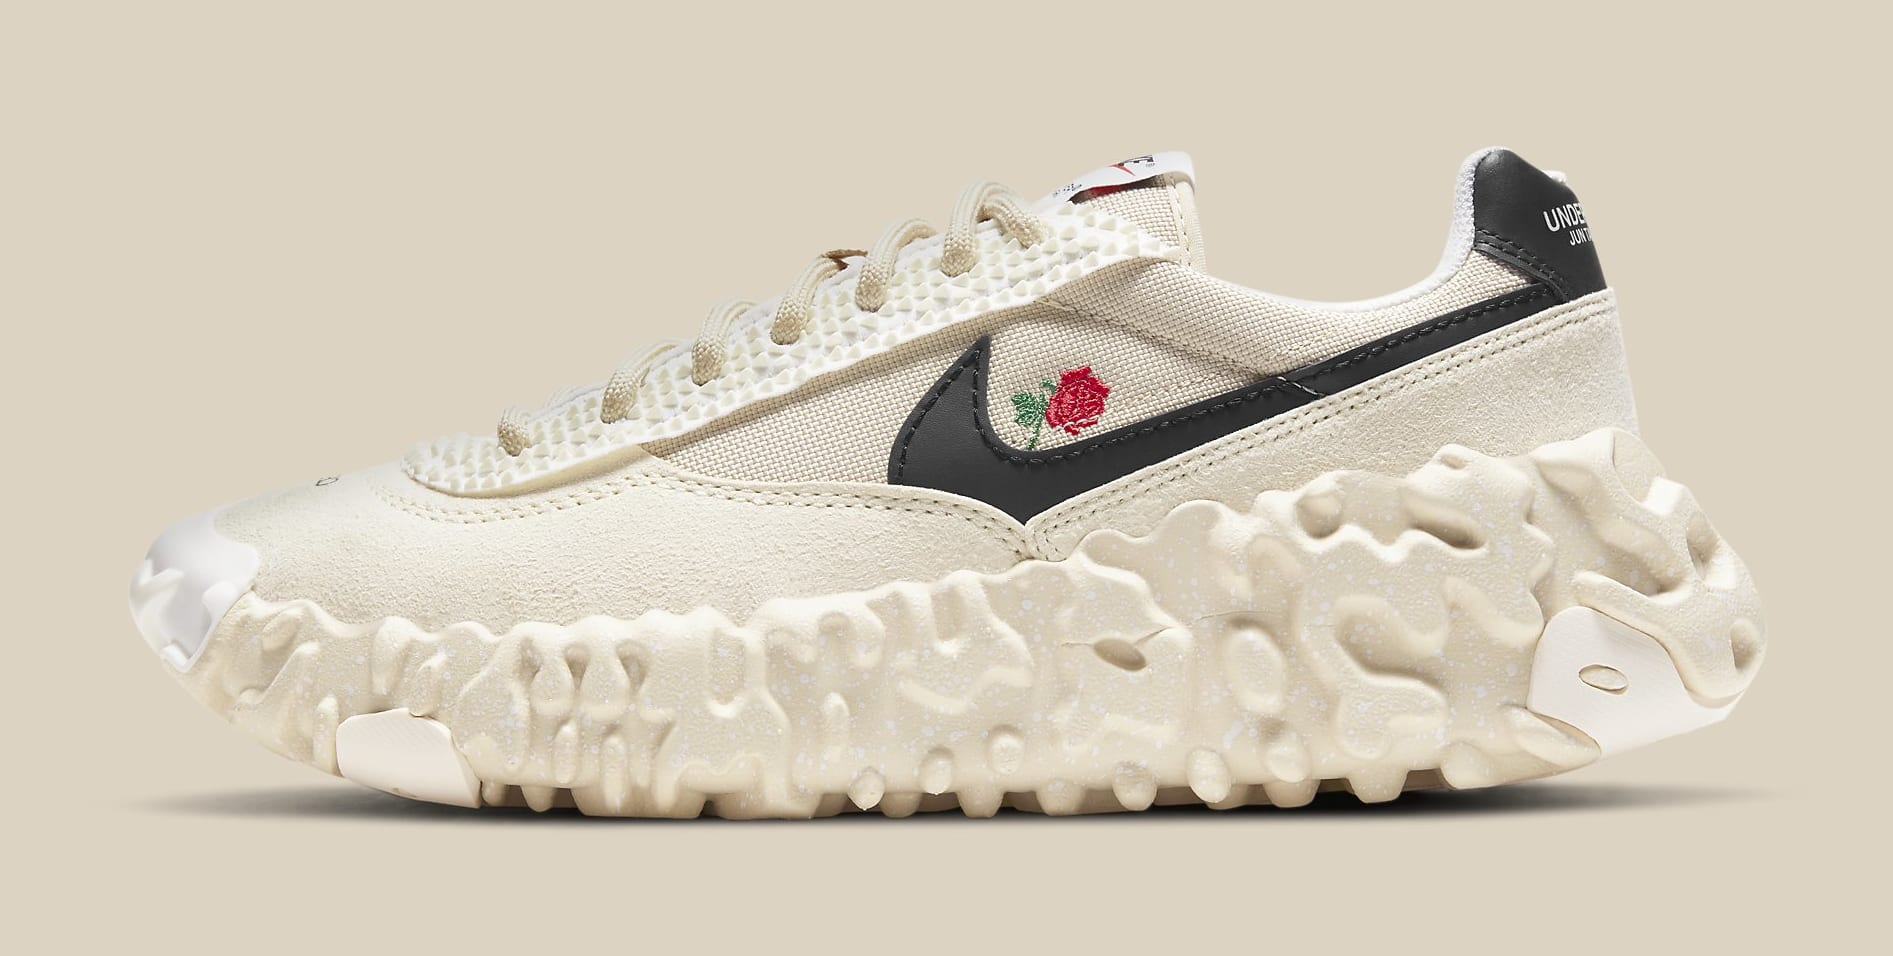 Undercover x Nike Overbreak SP 'Sail' DD1789-200 Lateral